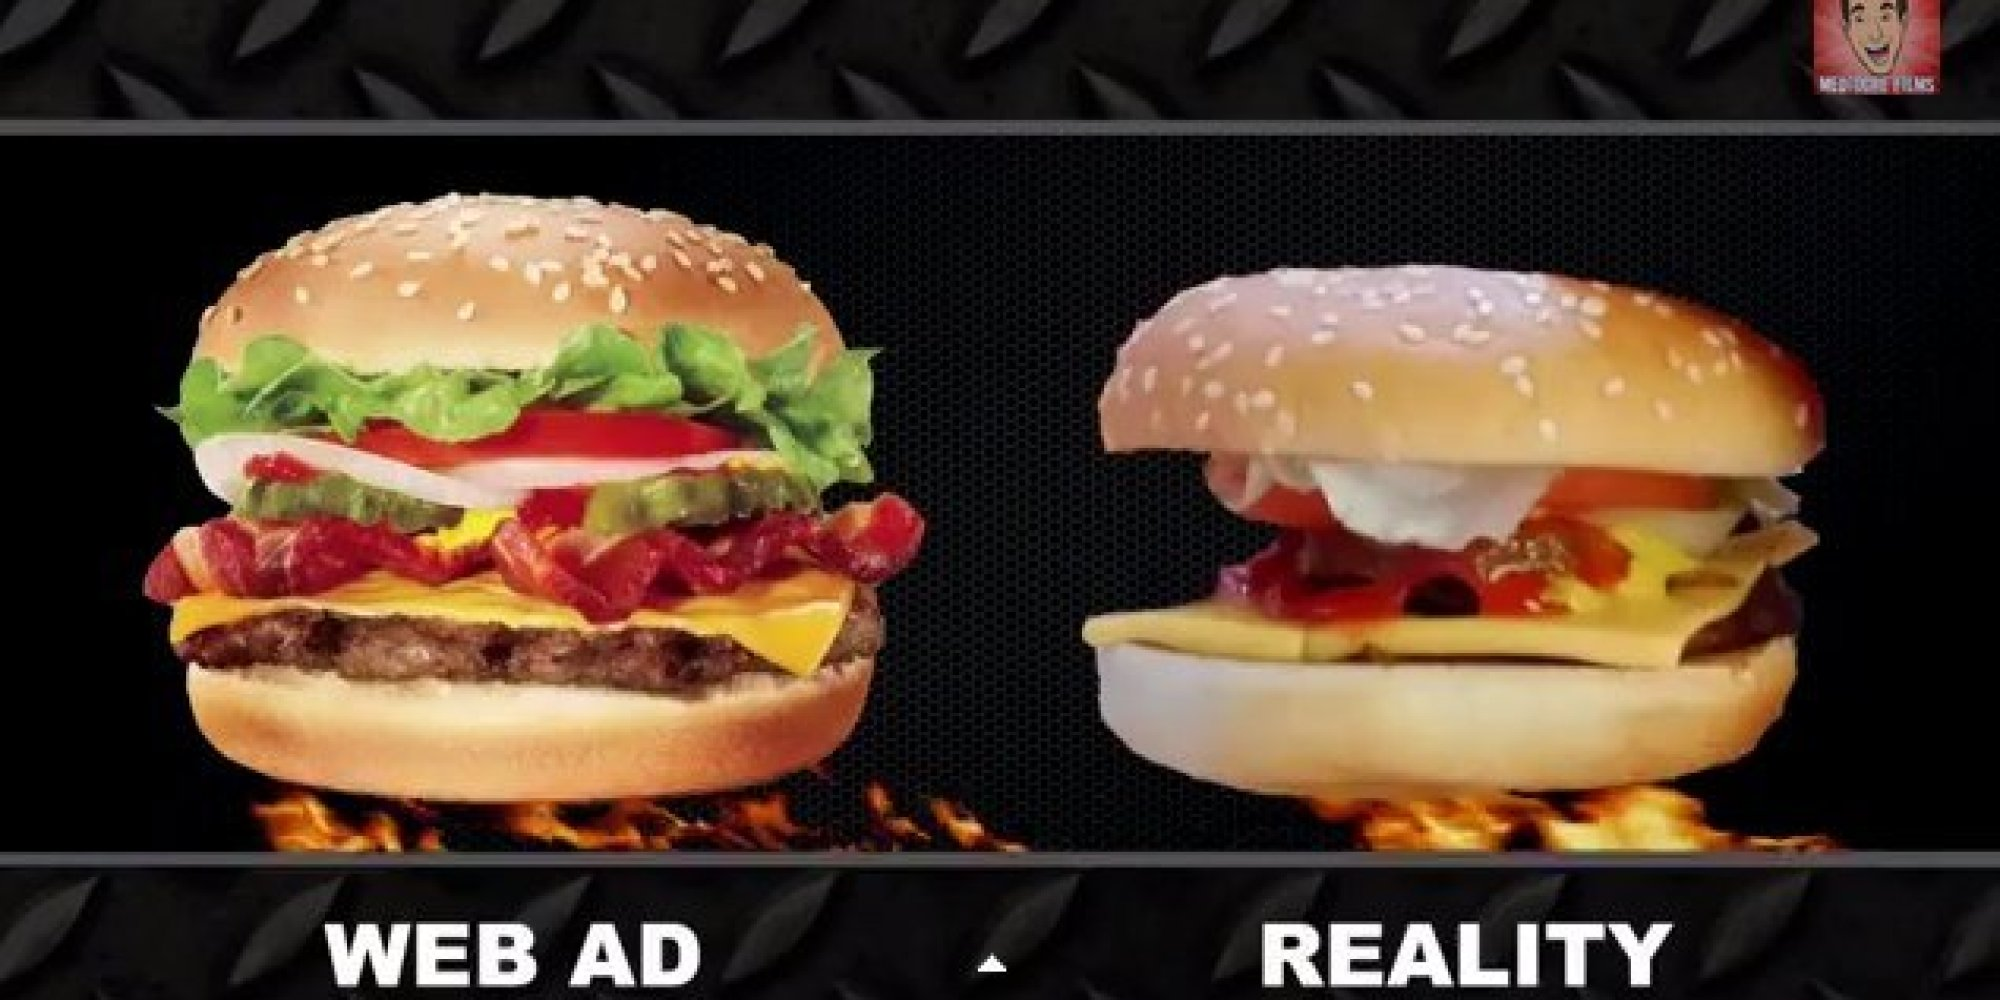 Fast Food Ads Vs Reality Show How Willing We Are To Eat